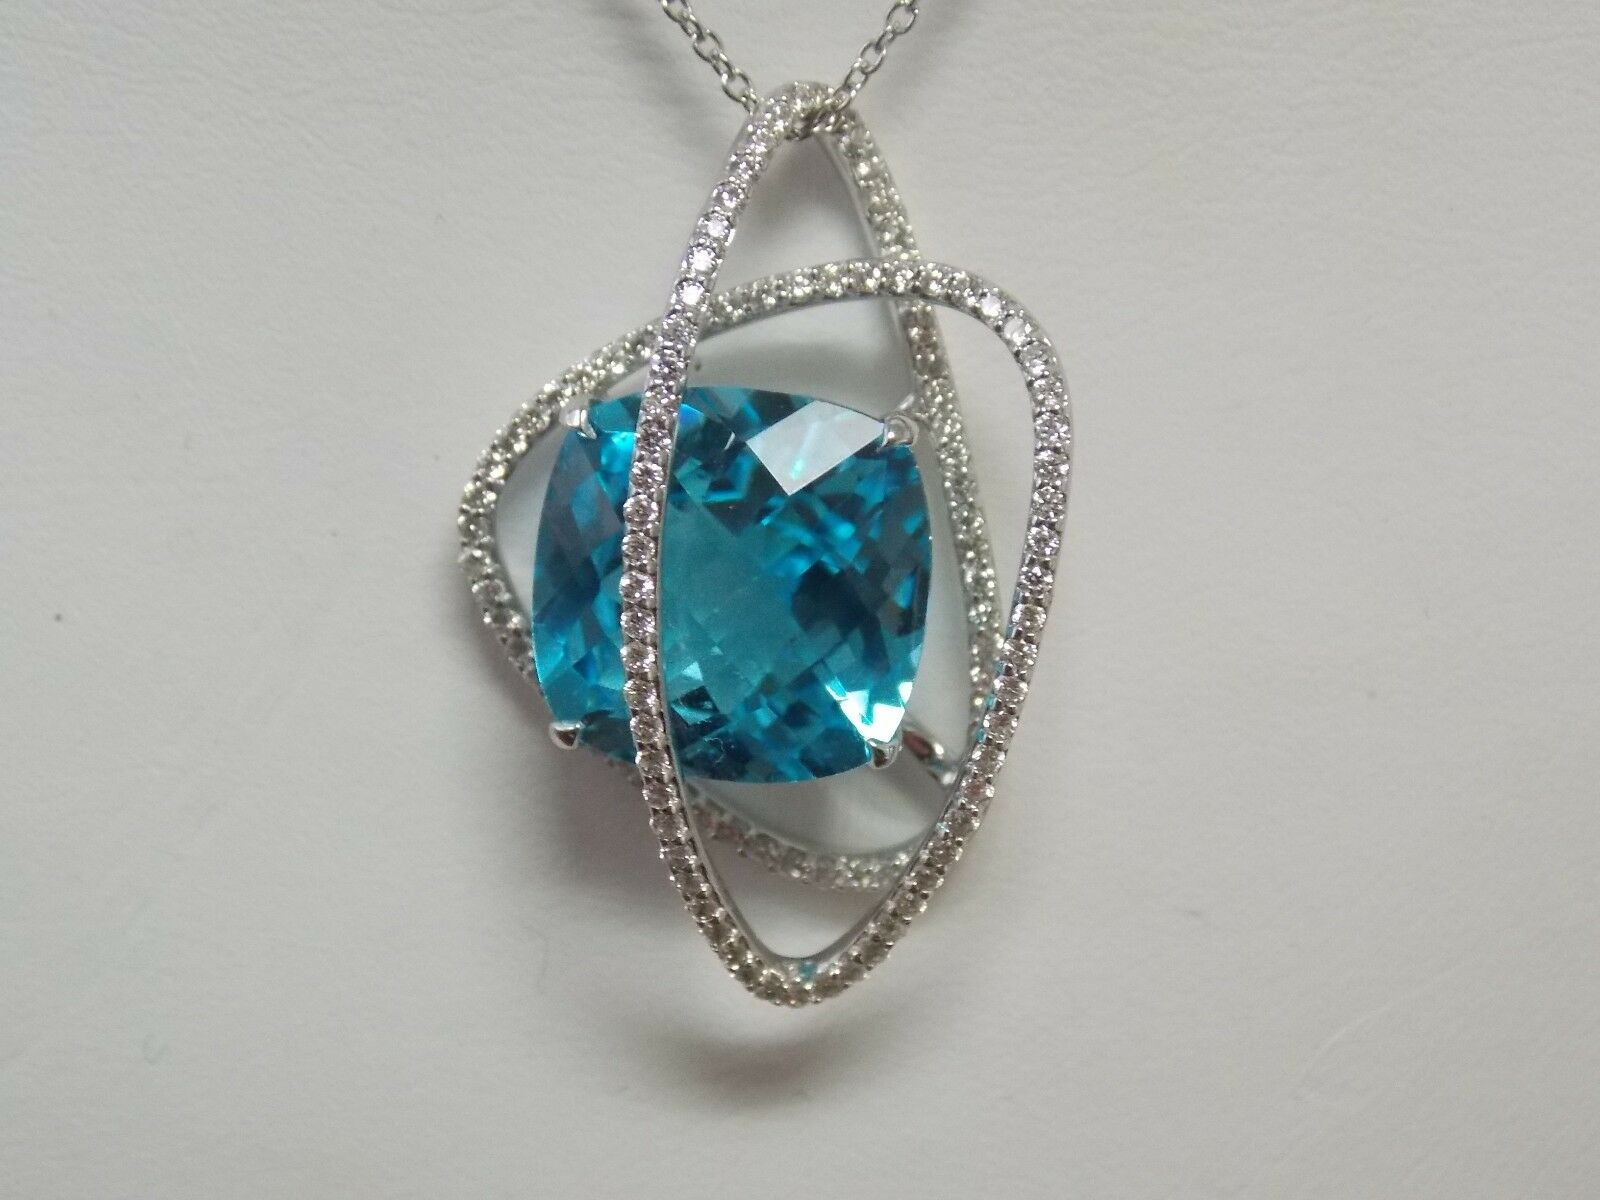 bluee Topaz & Diamond Fashion Pendant on 14K White gold by Allura